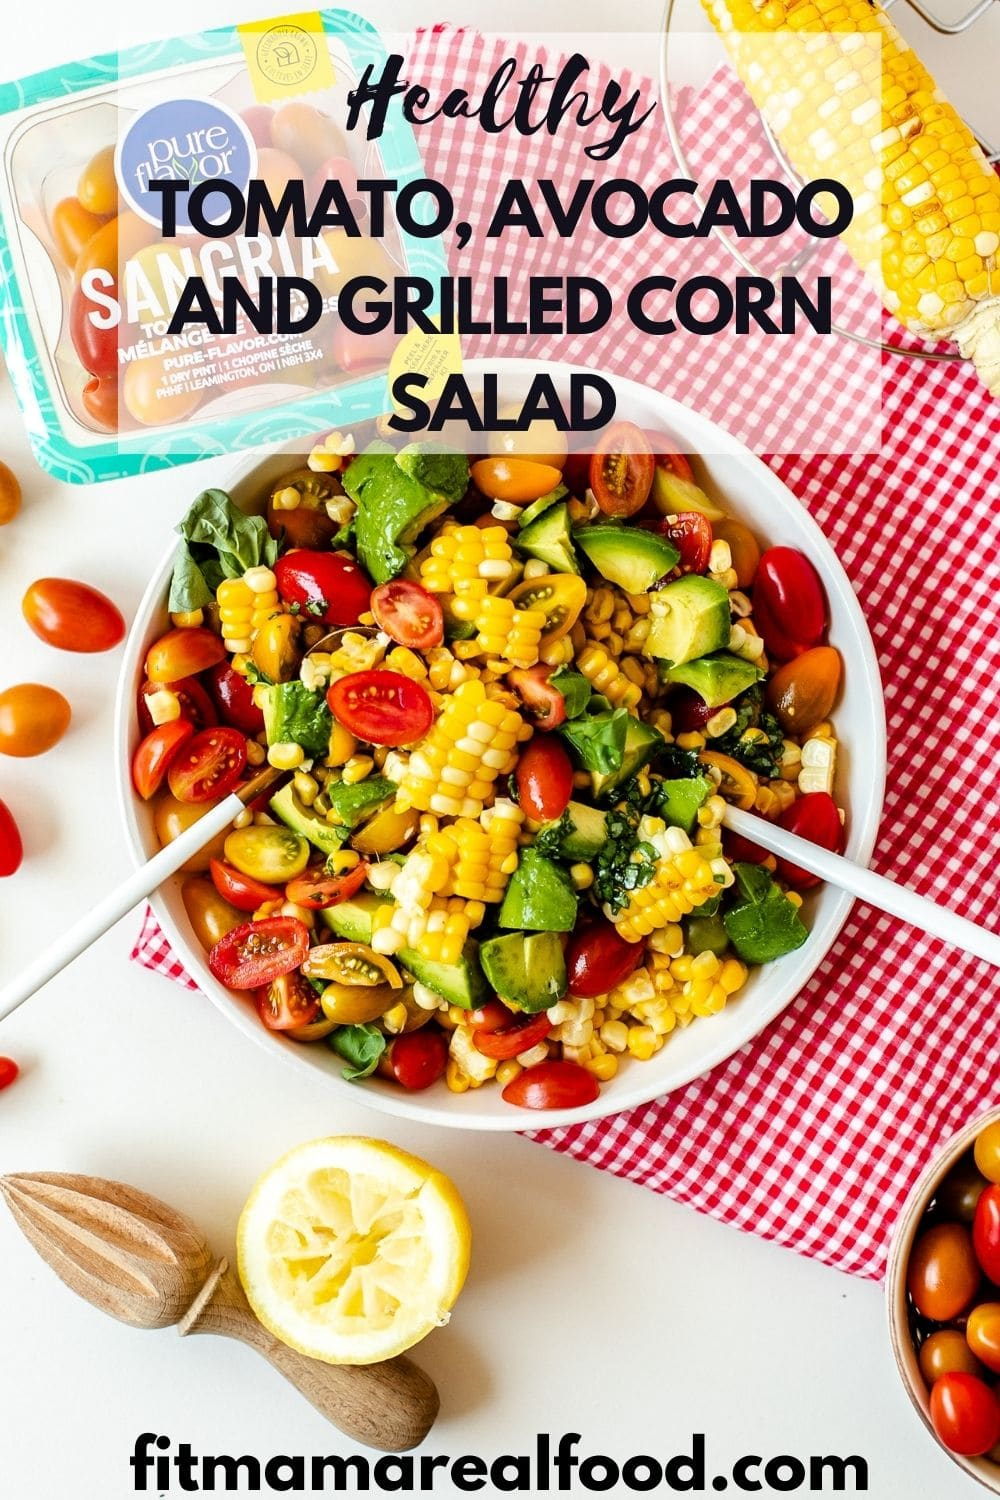 Tomato and Avocado Salad With Grilled Corn